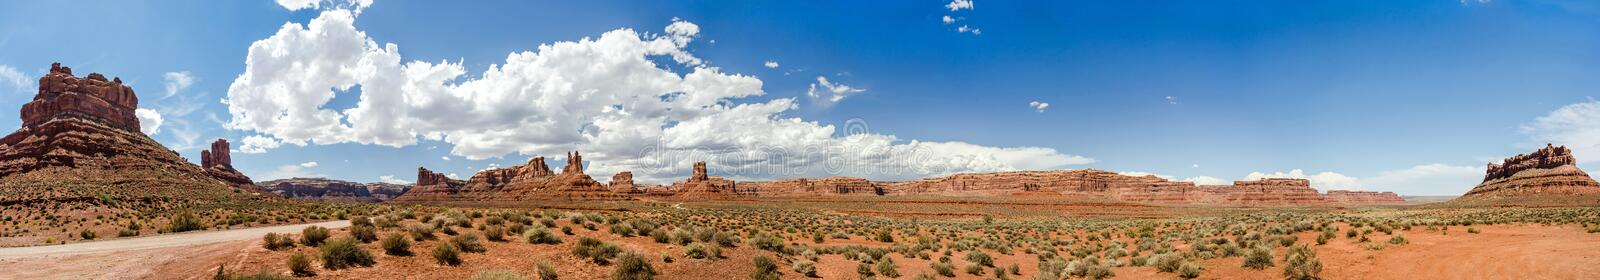 Scenic ultra wide desert panorama in the US Southwest. Scenic ultra wide desert panorama in the Southwest of the United States royalty free stock photo